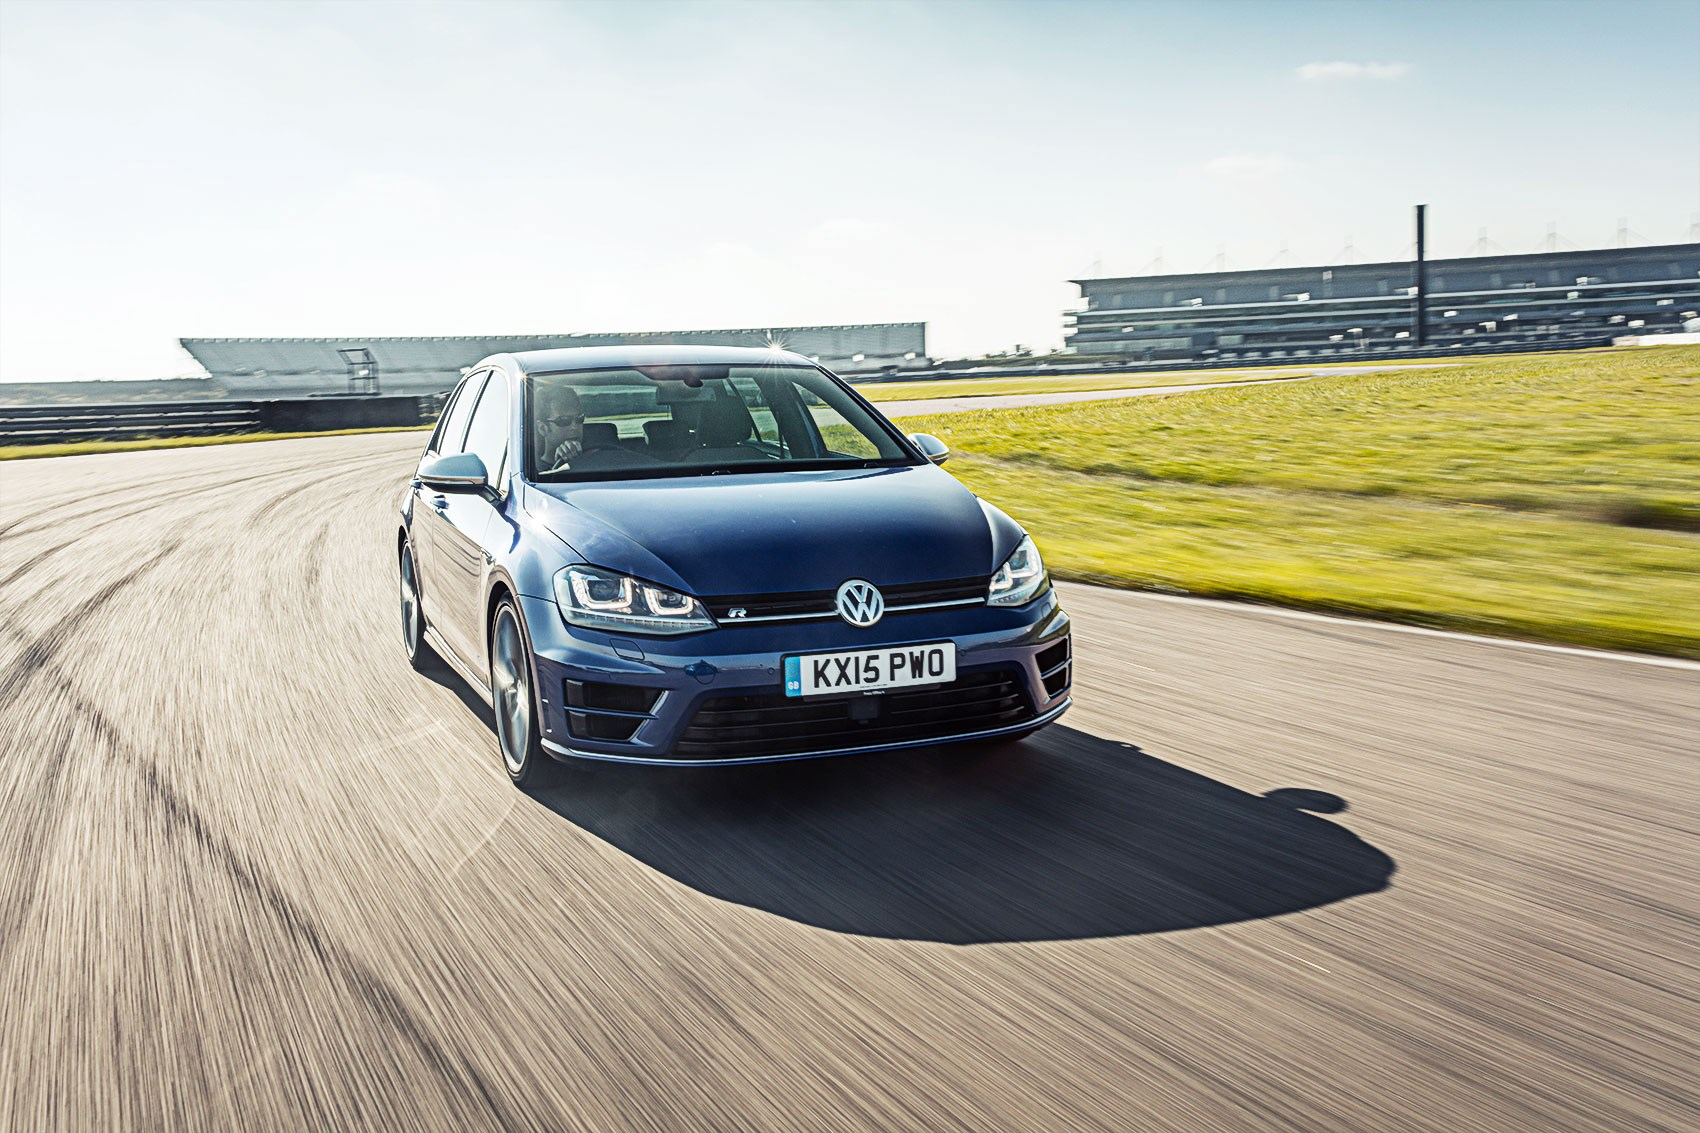 Vw golf r mk6 cars one love -  Brakes A Smoking And Damping Could Be Tighter Golf R On Track